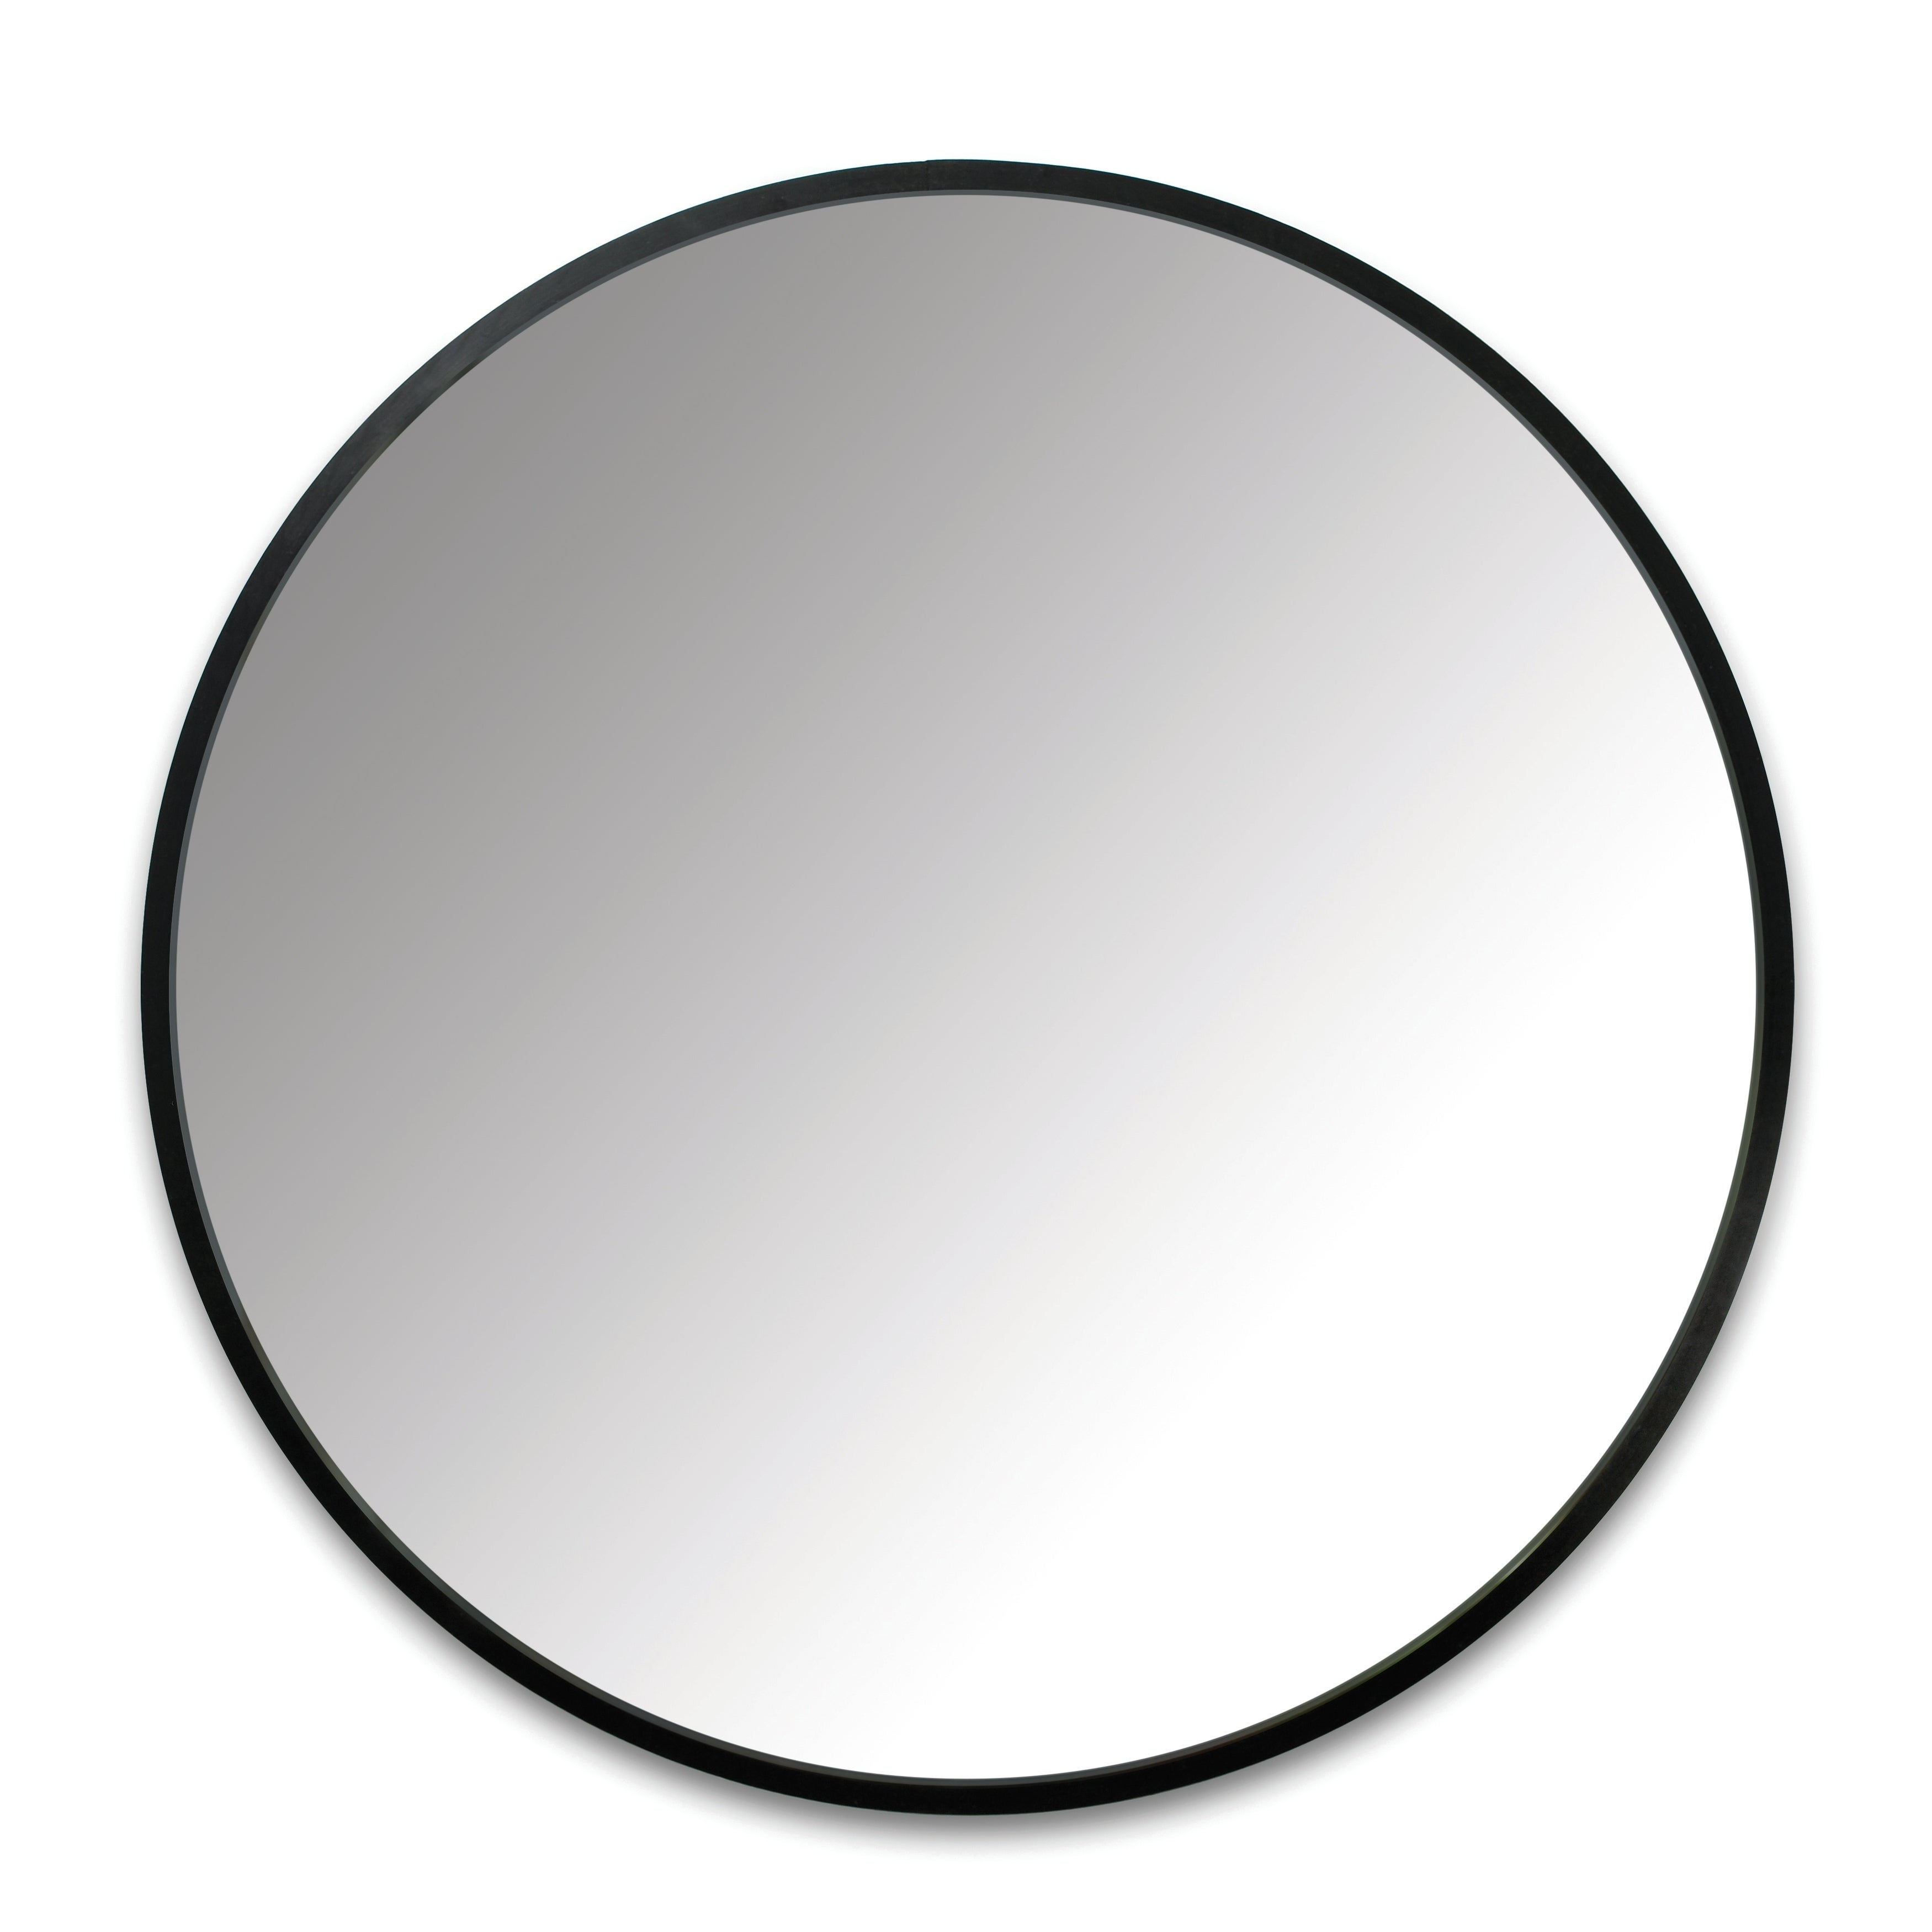 Umbra Hub 24 Inch Round Modern Wall Mount Mirror - 24"